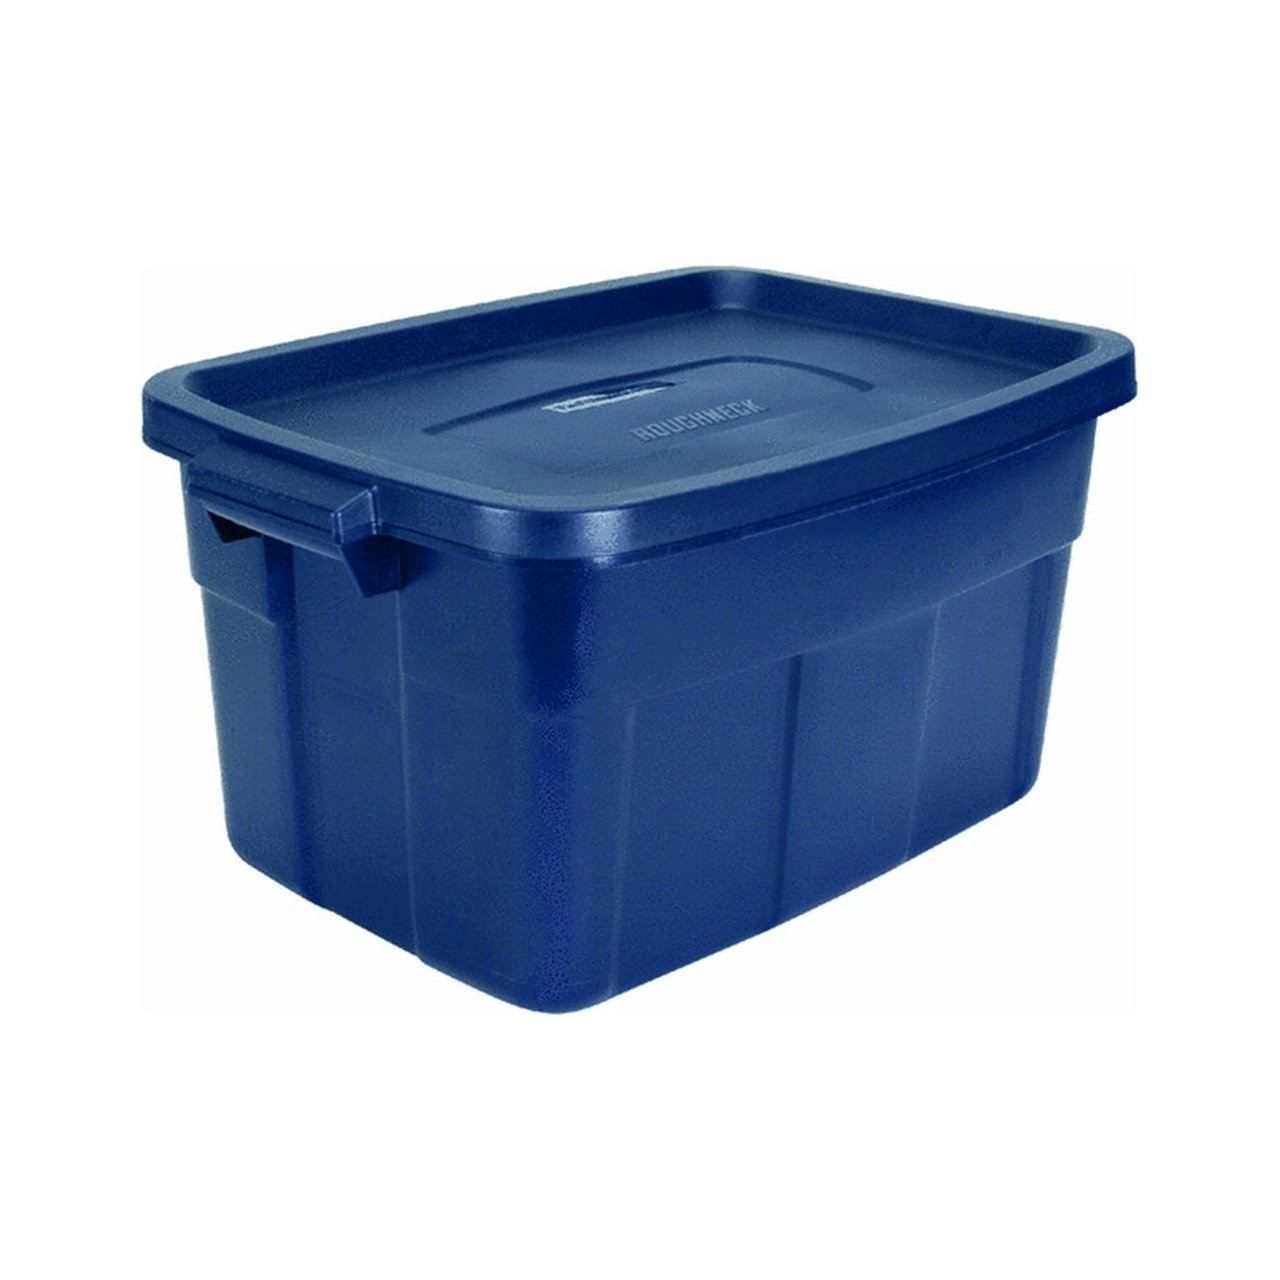 tubs rubbermaid tub of lot image